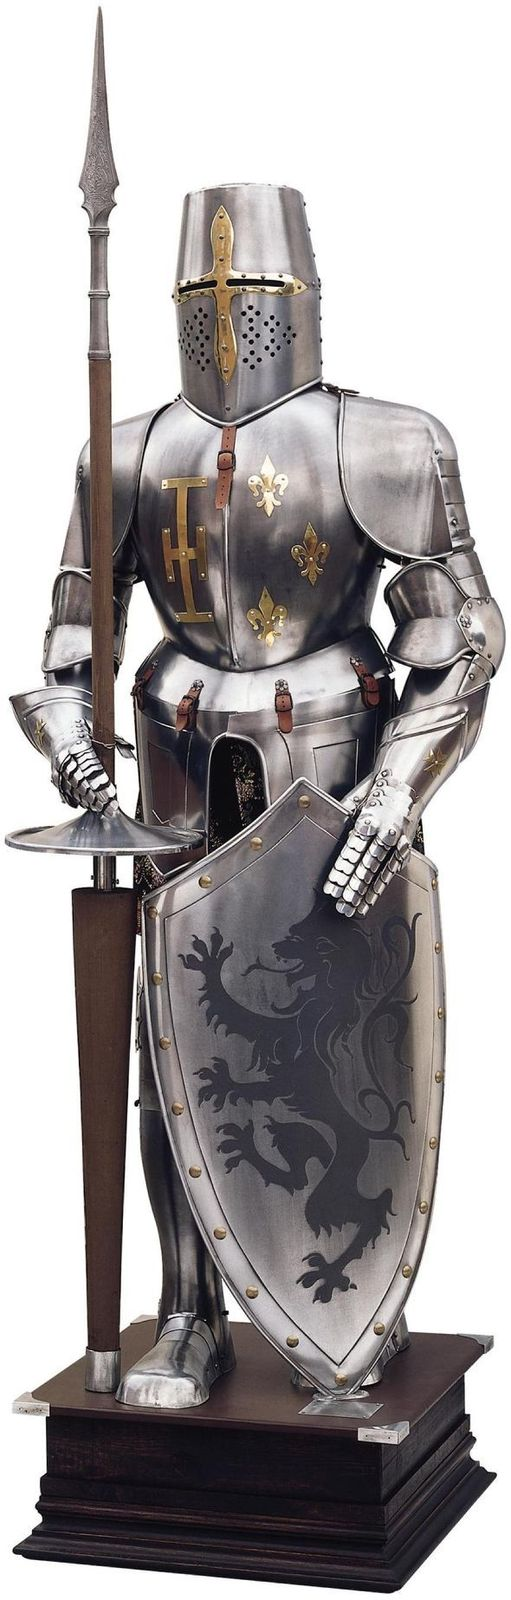 Medieval_Knight_Jousting_Suit_of_Armor.